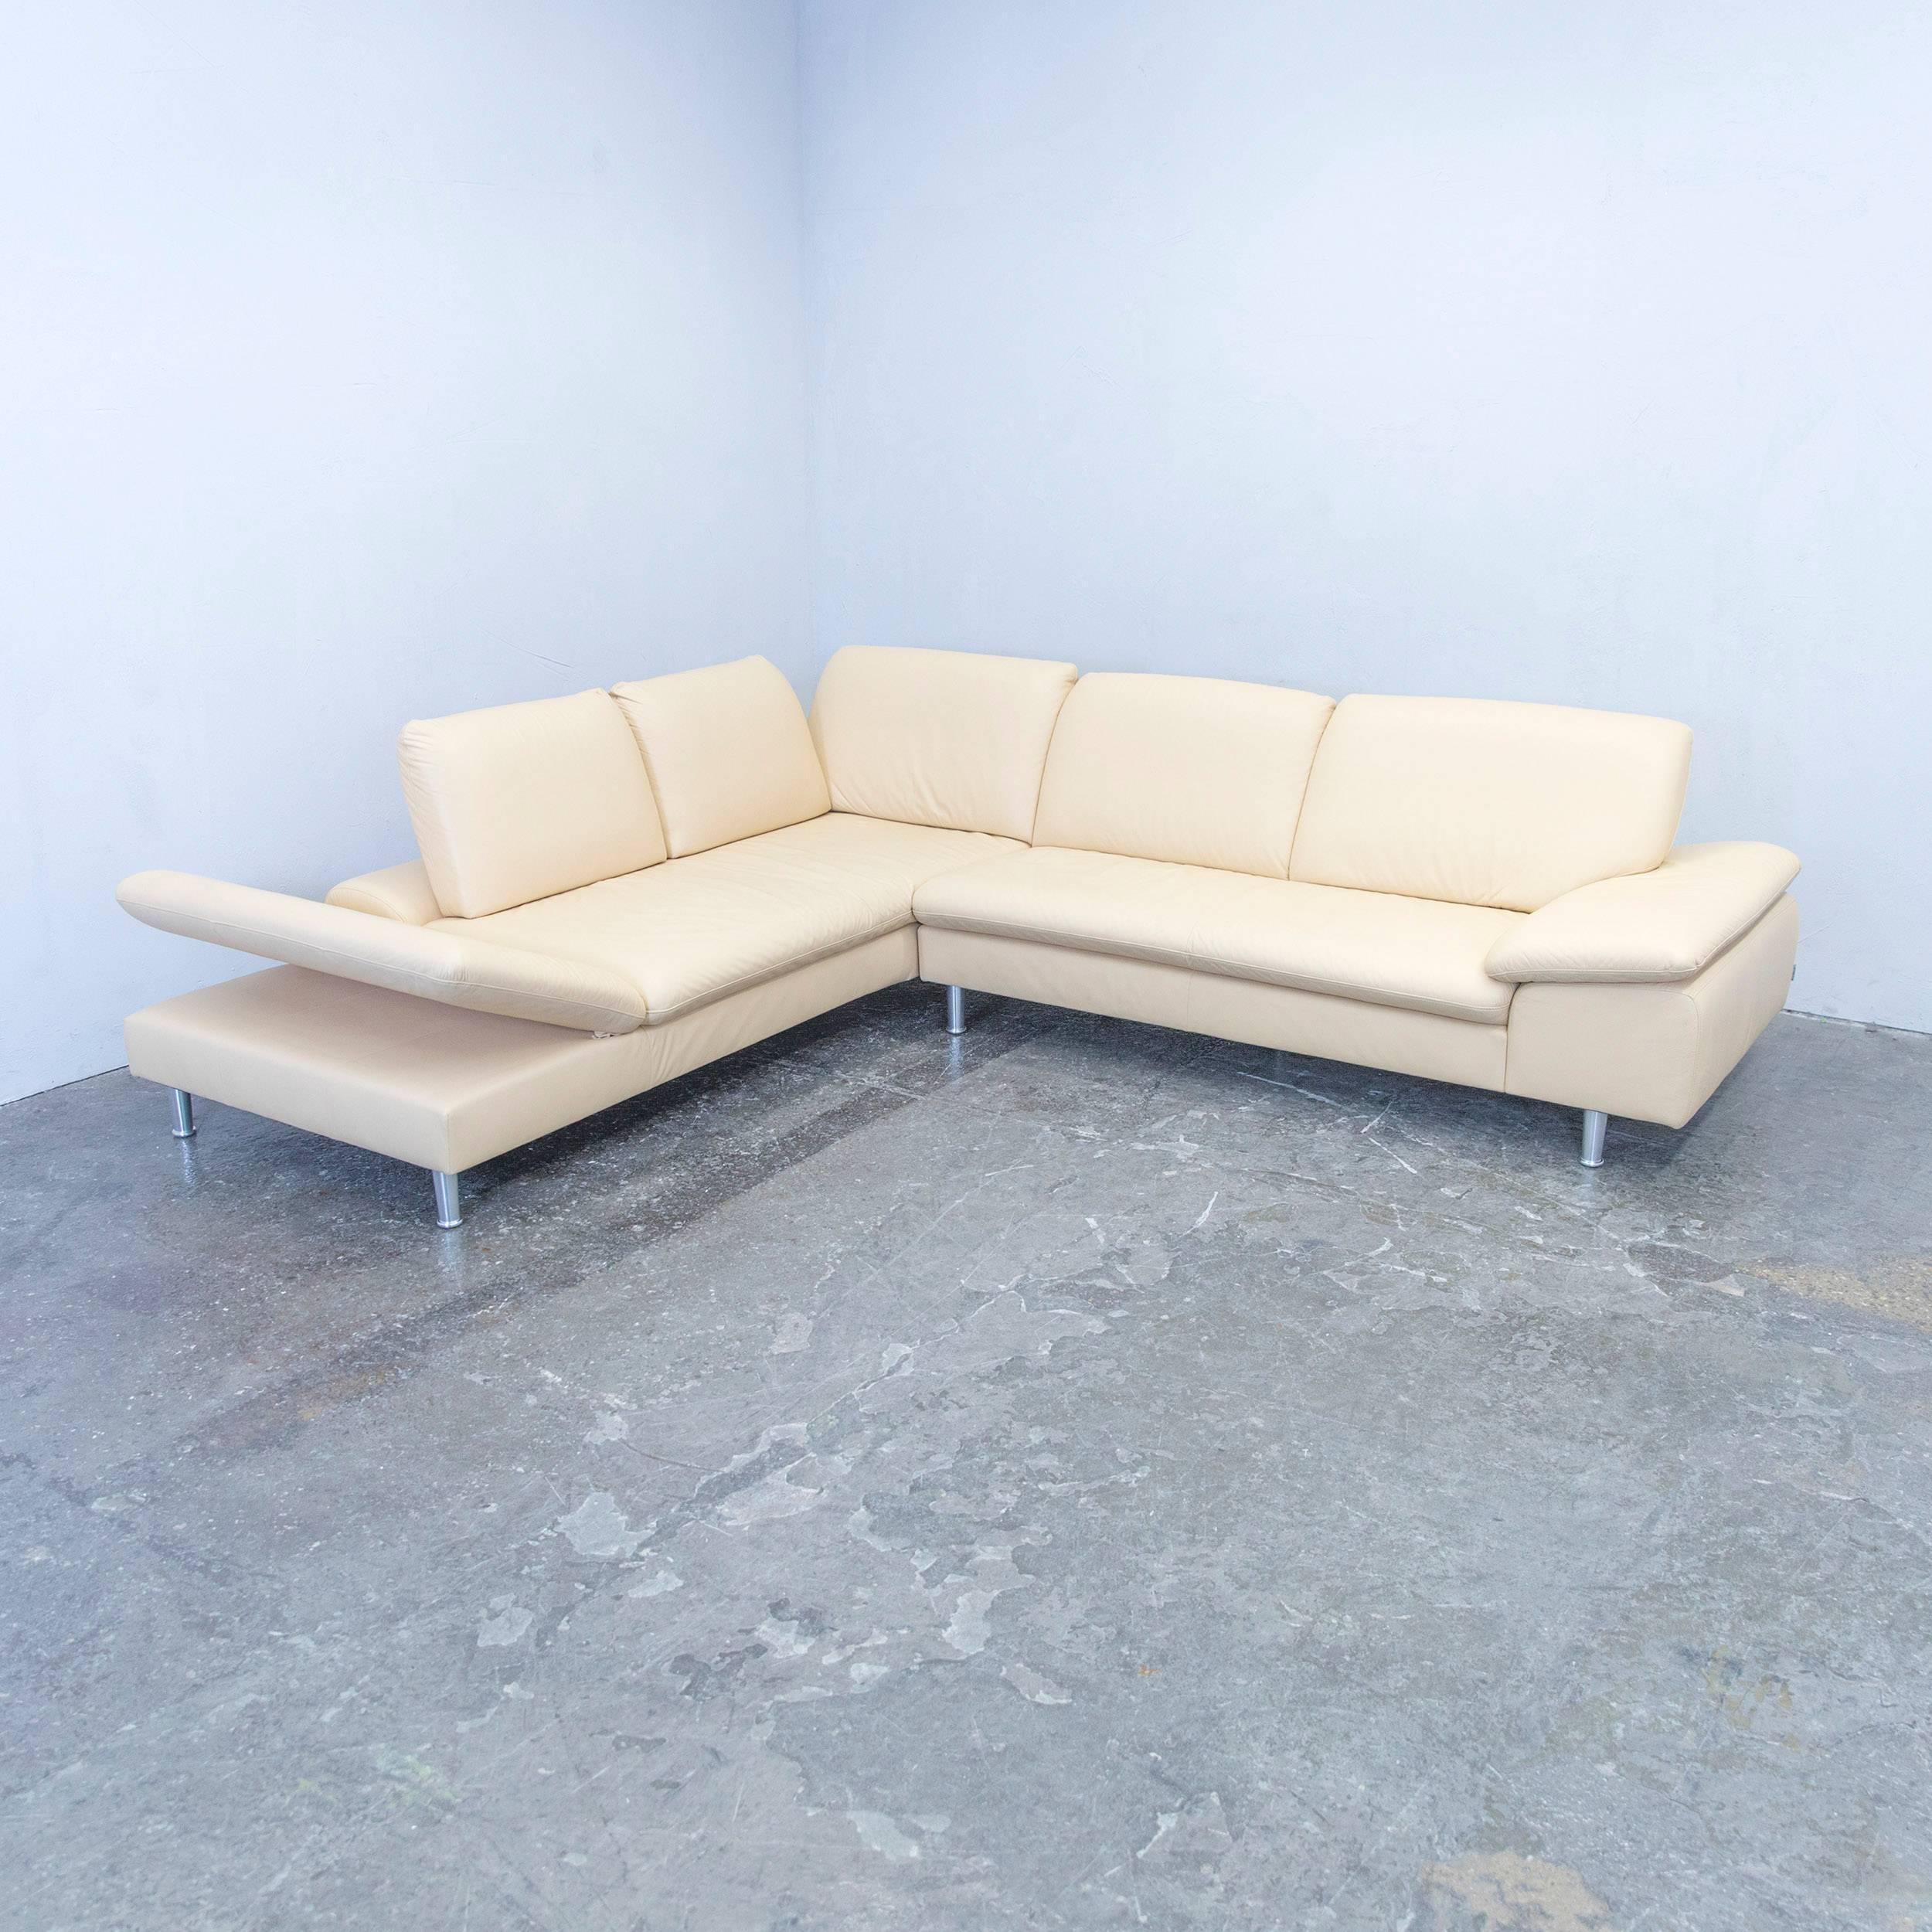 Gerteset kche best beautiful ewald schillig sofas couch for Couch regensburg